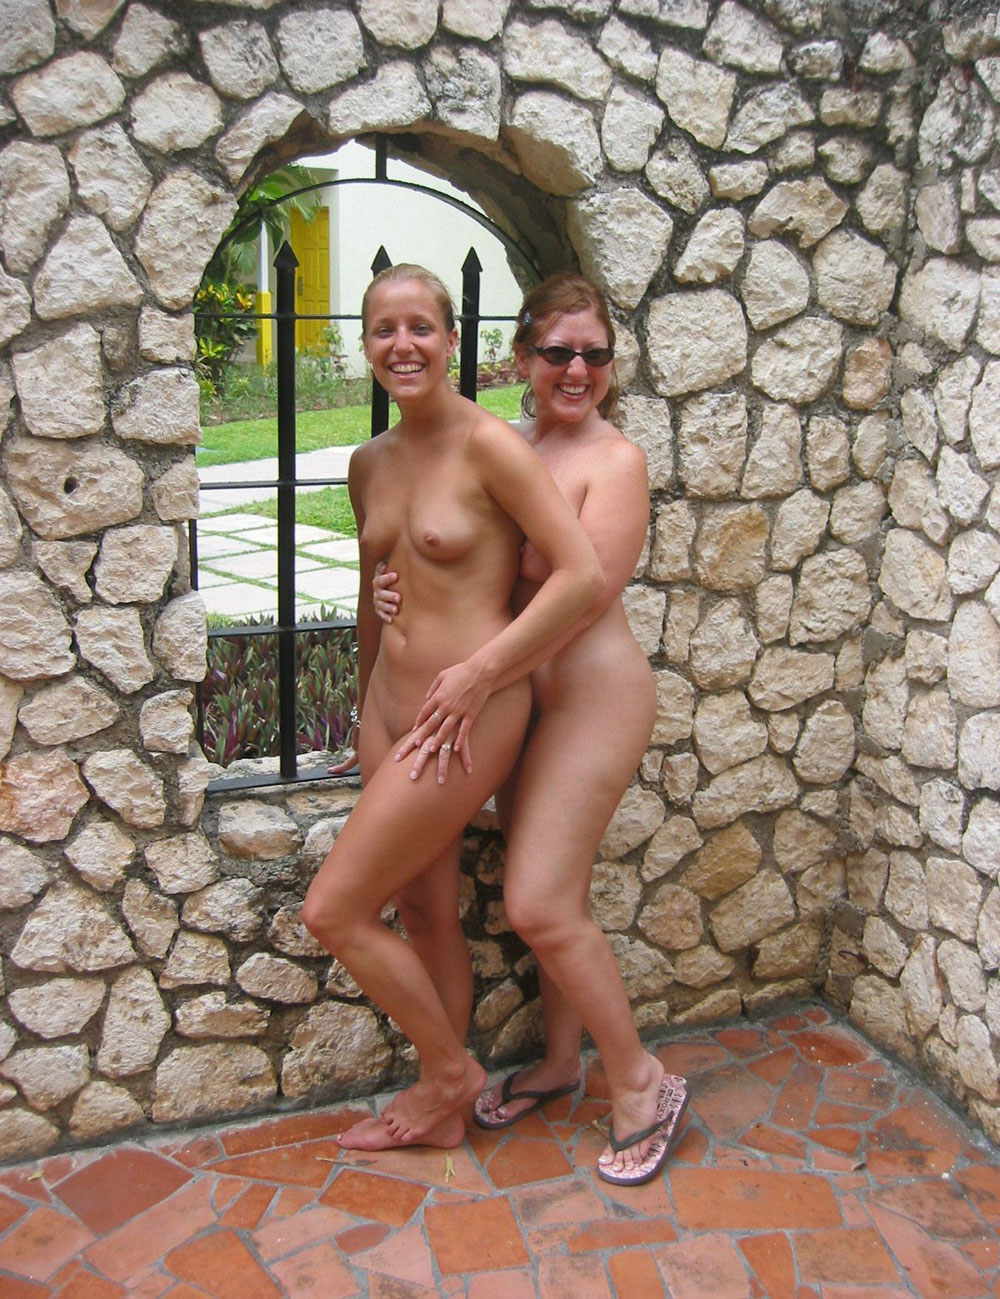 Happy wild girls show their treasure naked bodies in an old house revealing some cute titties and hairy pussy pubes